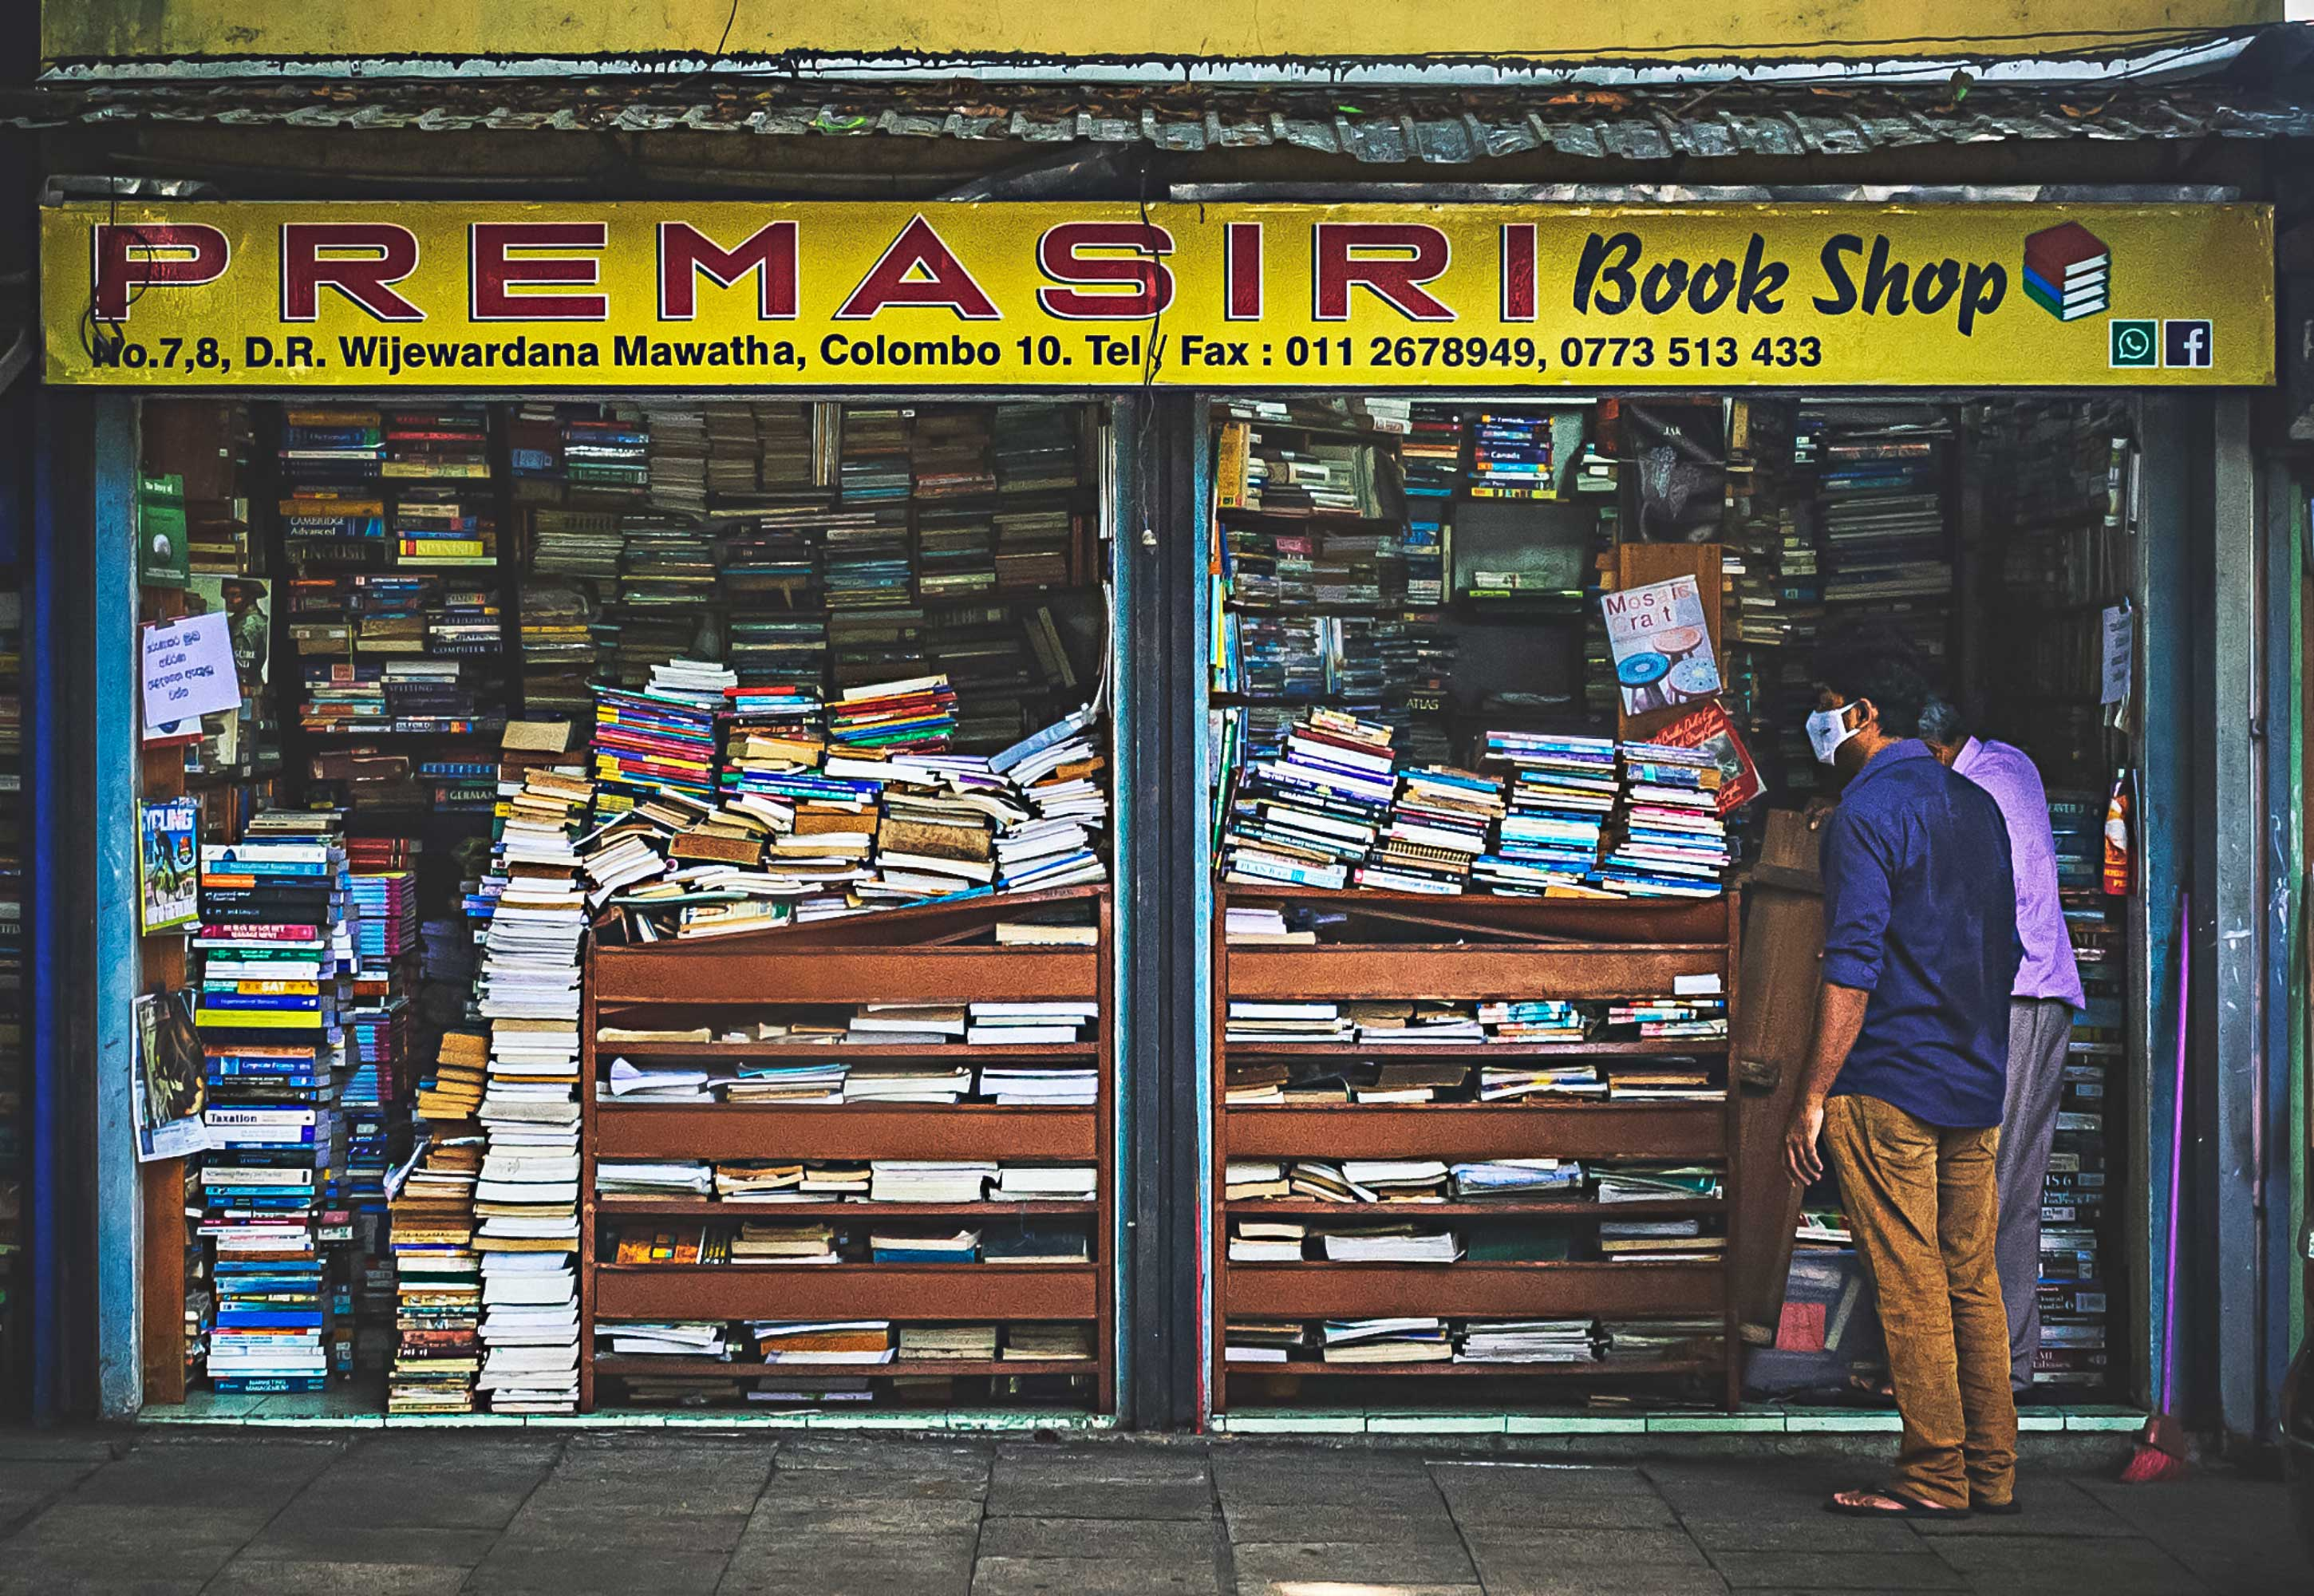 McCallum Road Book Shops. A second-hand bookshop on McCallum Road, in the Maradana area of Sri Lanka's capital, Colombo, opening for business after sixty-eight days of lockdown.